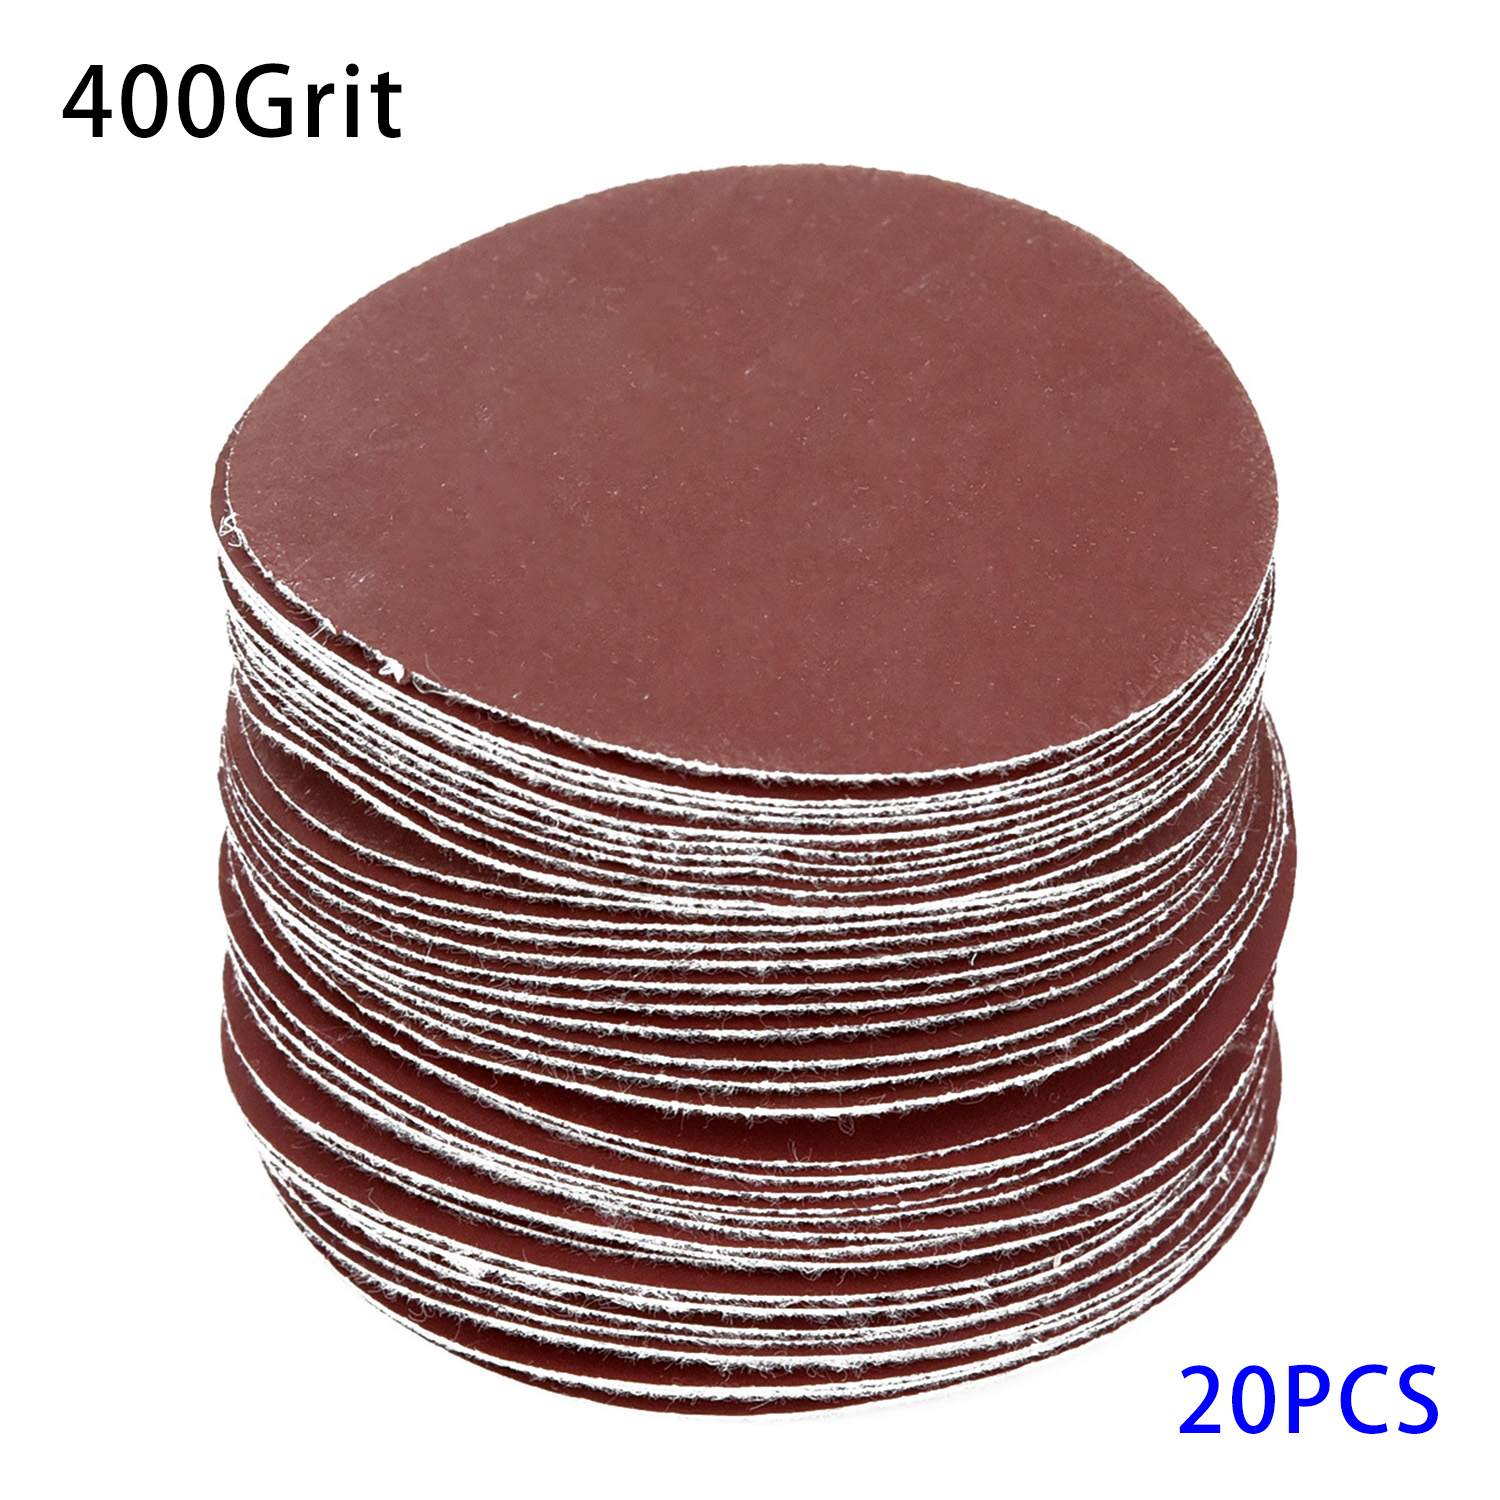 20pcs 3 75mm 40/100Grit Sander Disc Sanding Pad Polishing Pad Sandpaper Set Y1